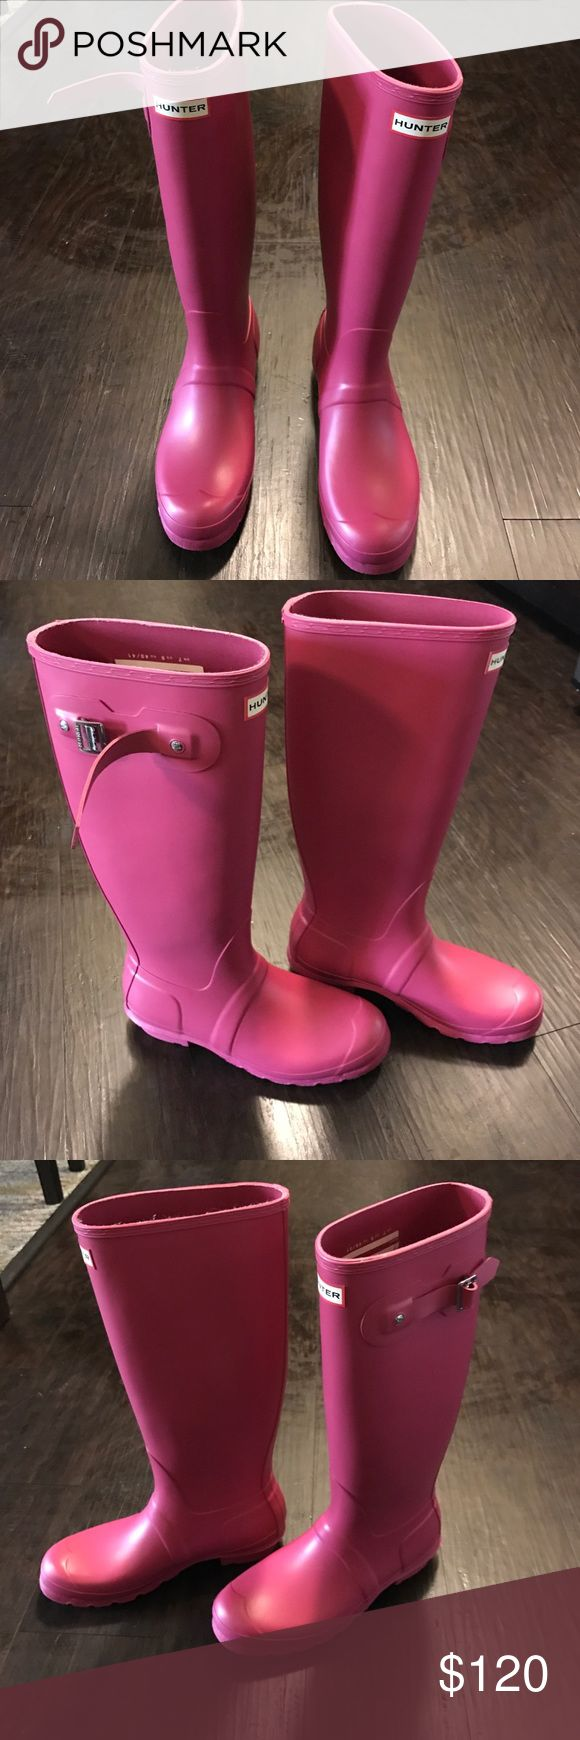 Hunter tall original Matt pink rain boot Have been wore a few times, freshly cleaned and in great condition. Pictures of minor marks. No box no trades Hunter Boots Shoes Winter & Rain Boots